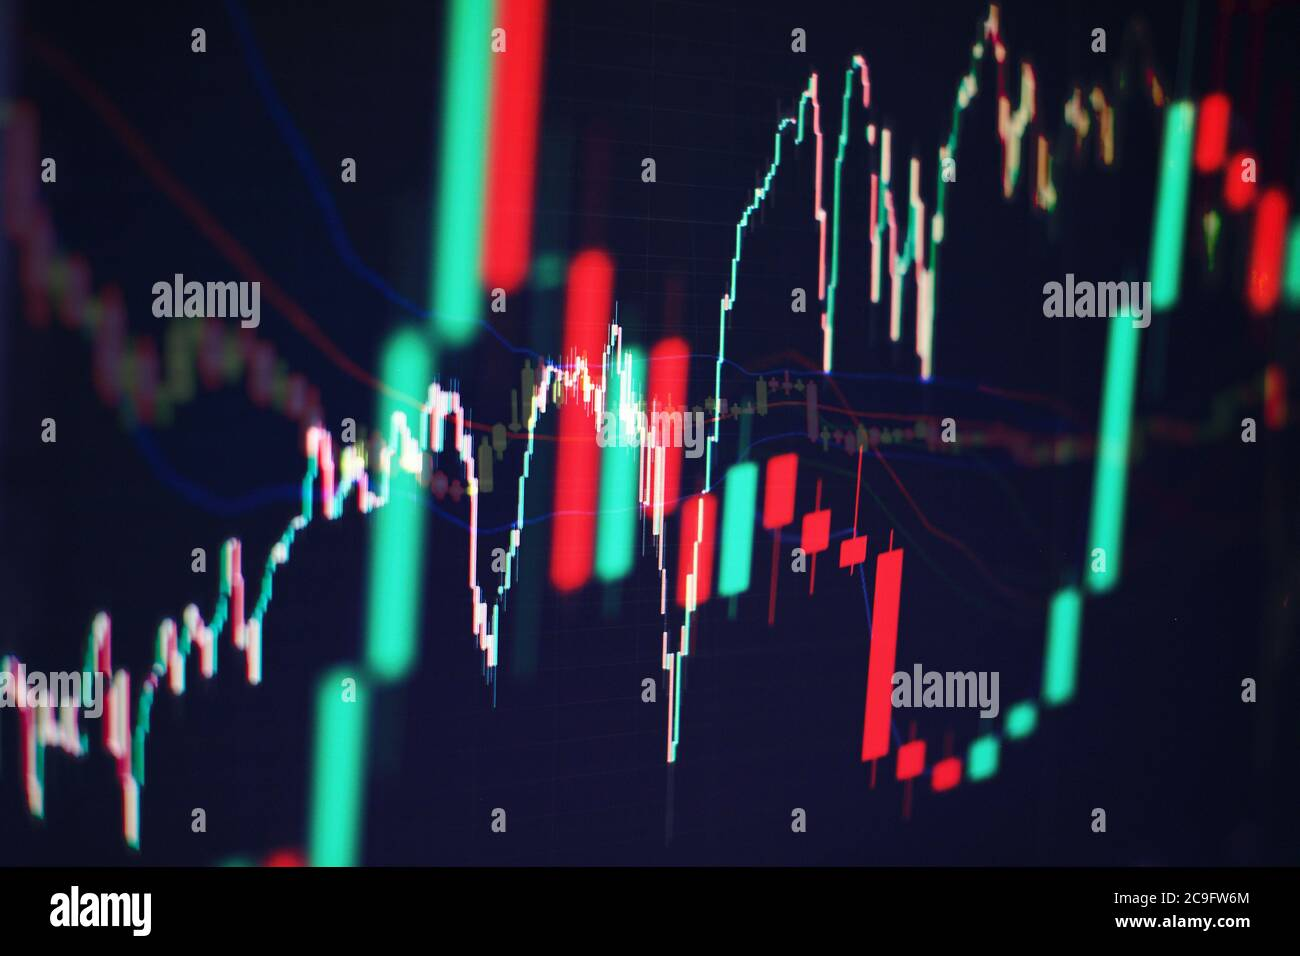 Data analyzing from charts and graph to find out the result in trading market. Working set for analyzing financial statistics and analyzing a market d Stock Photo